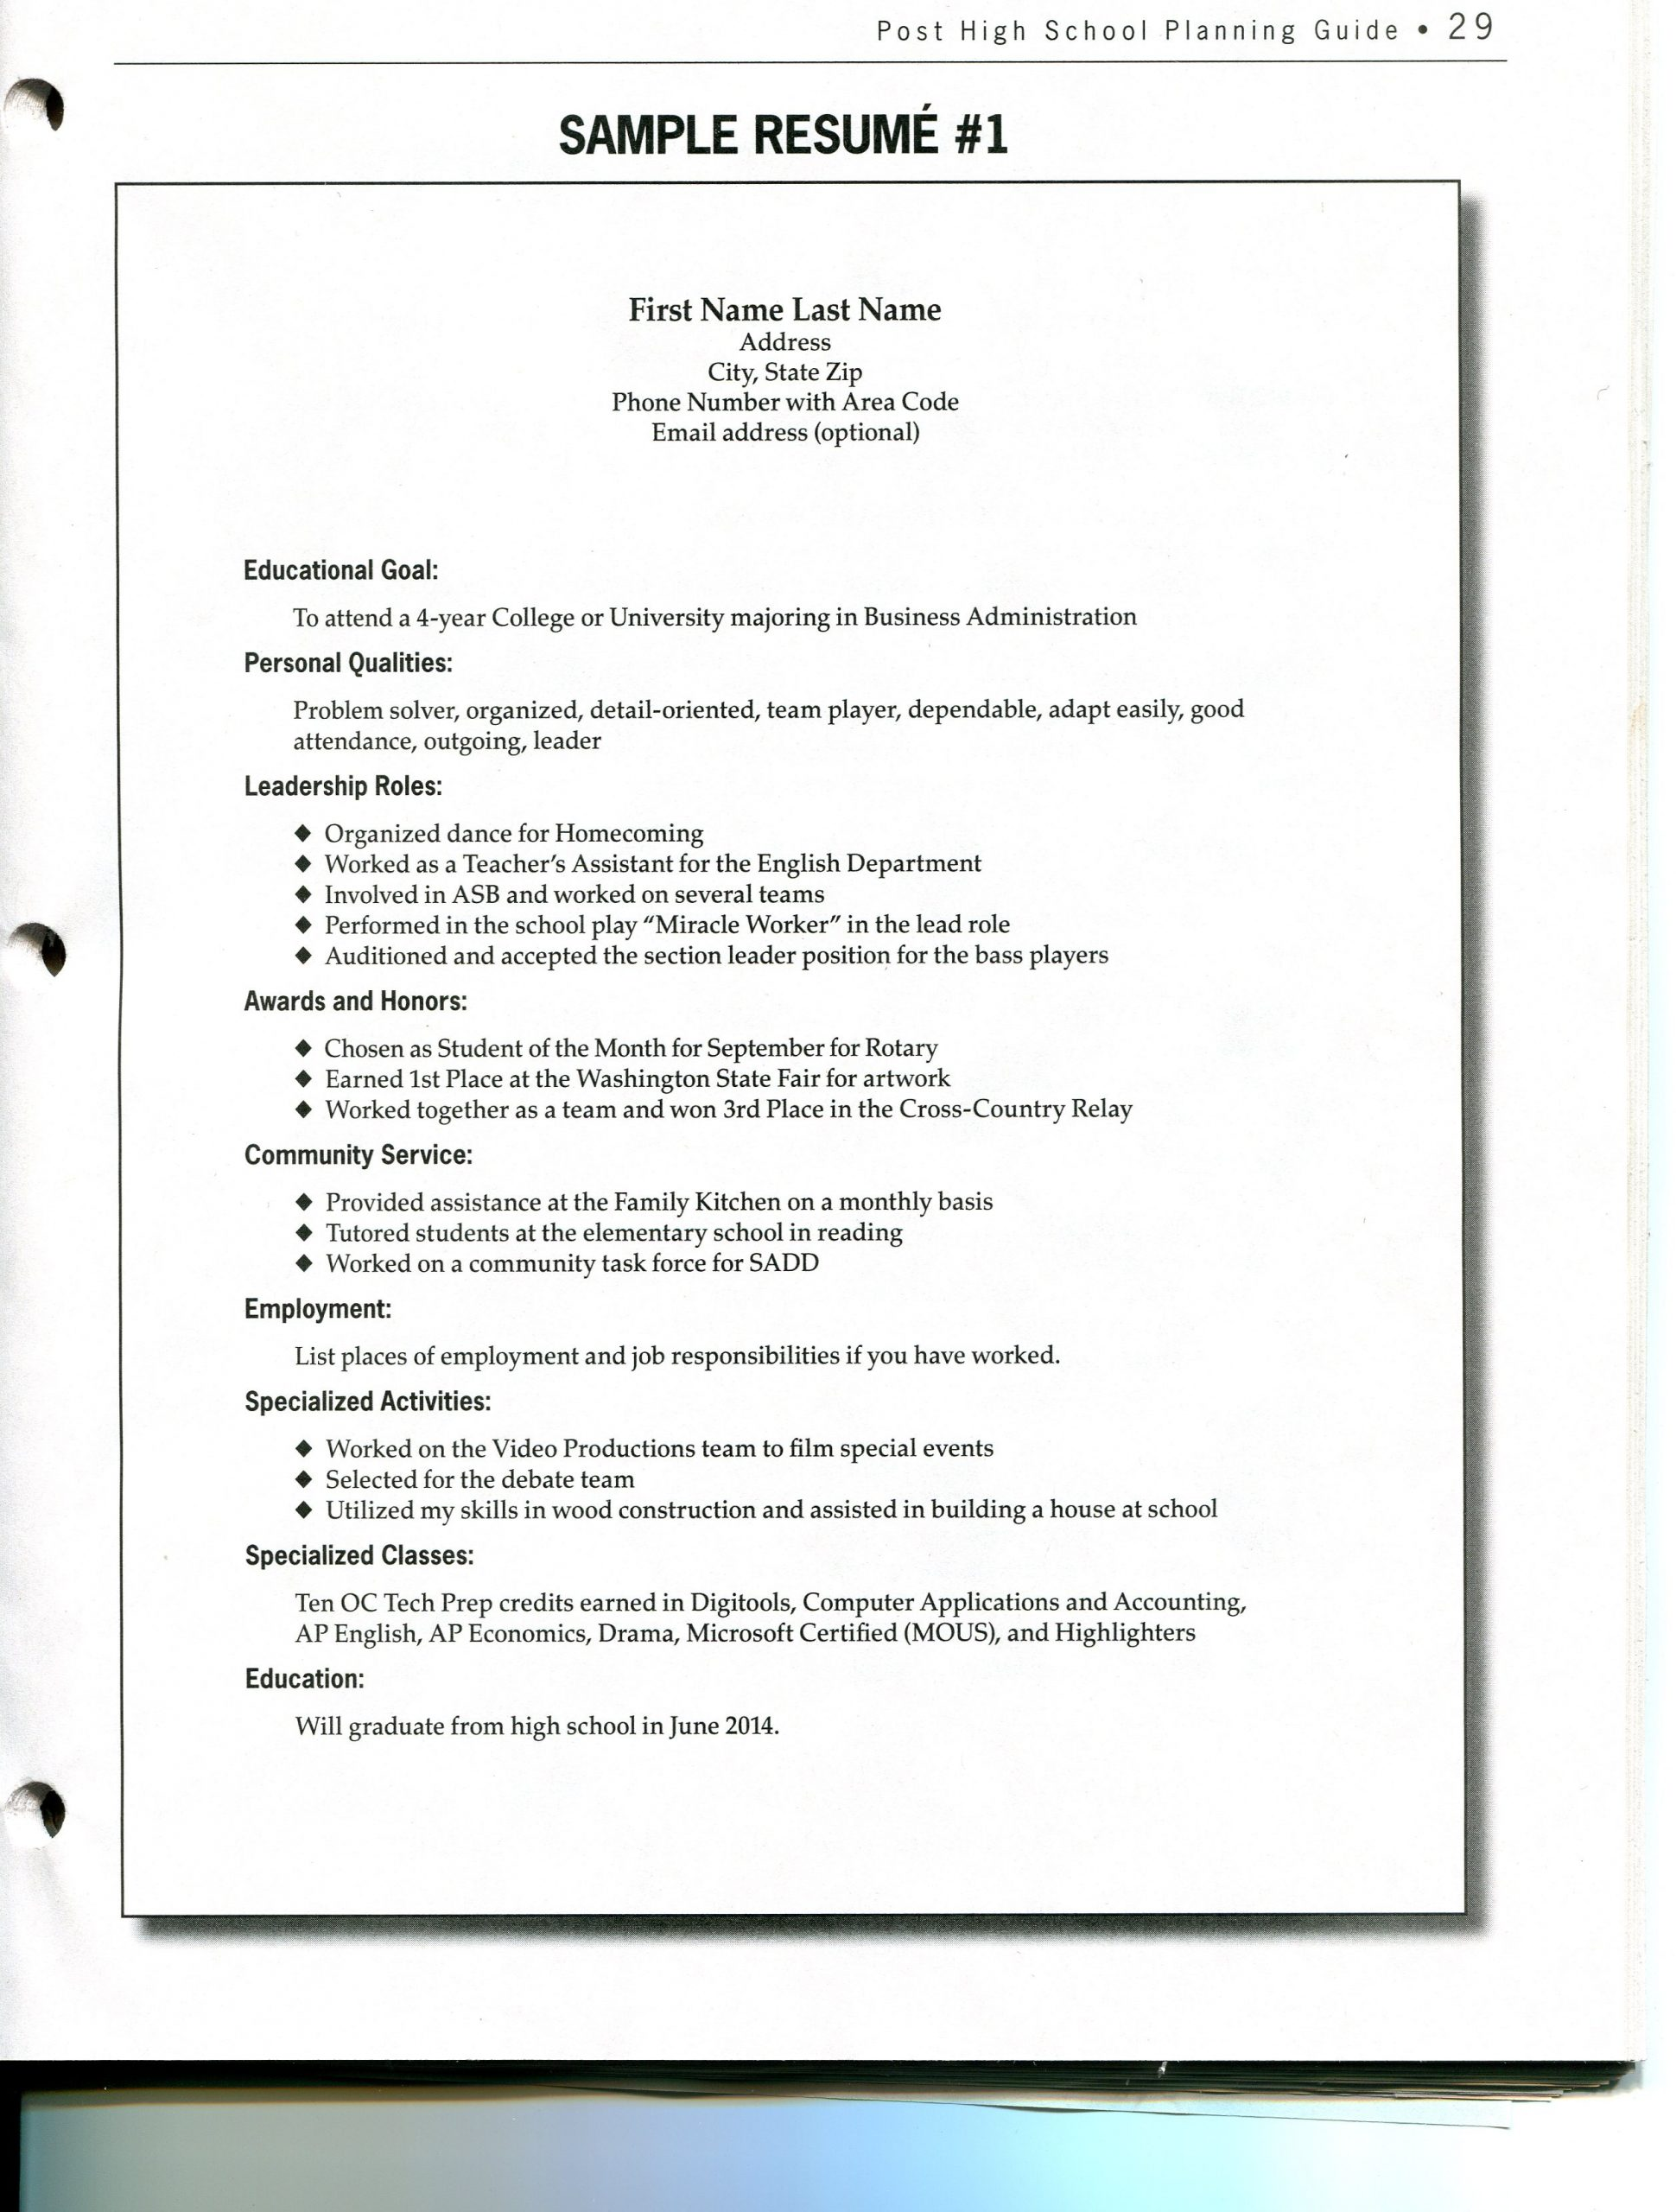 Middle School Resume Worksheet Blank Resume Worksheet for High School Students